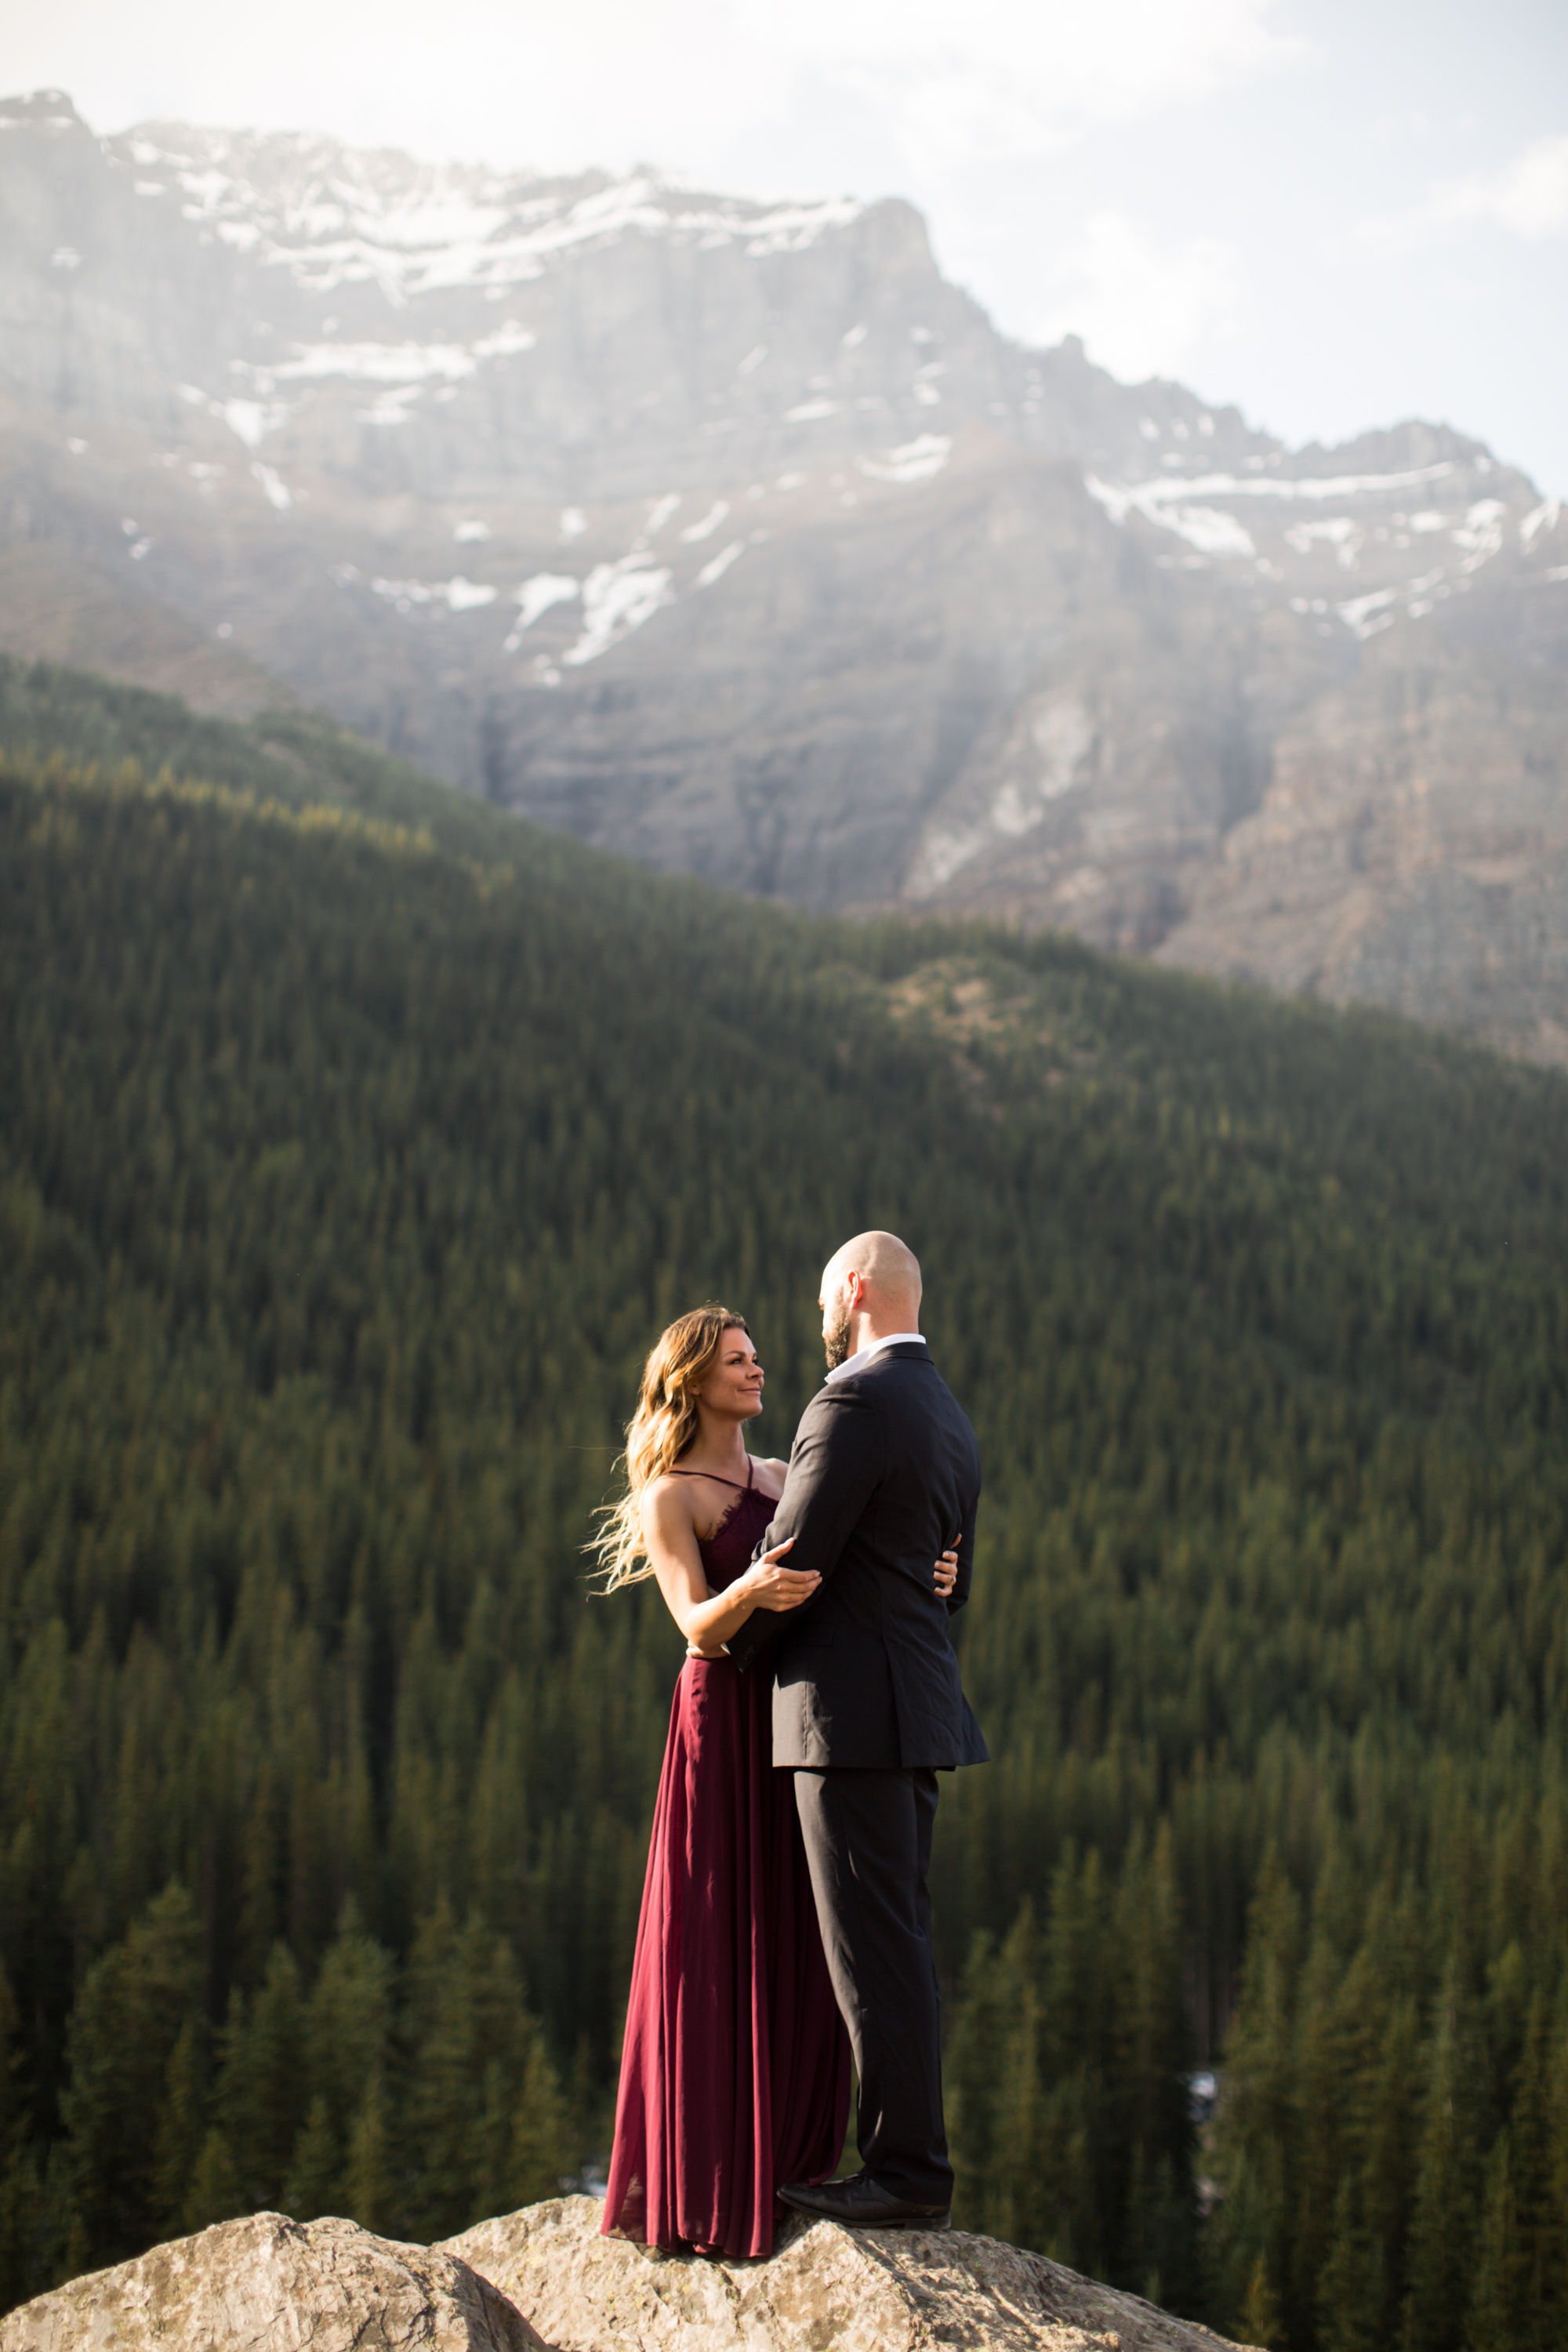 169Willow_and_Wolf_Photography_Sarah_and_Karman_Engagement_Banff-332Willow_and_Wolf_Photography_Sarah_and_Karman_Engagement_Banff-BEC_2352